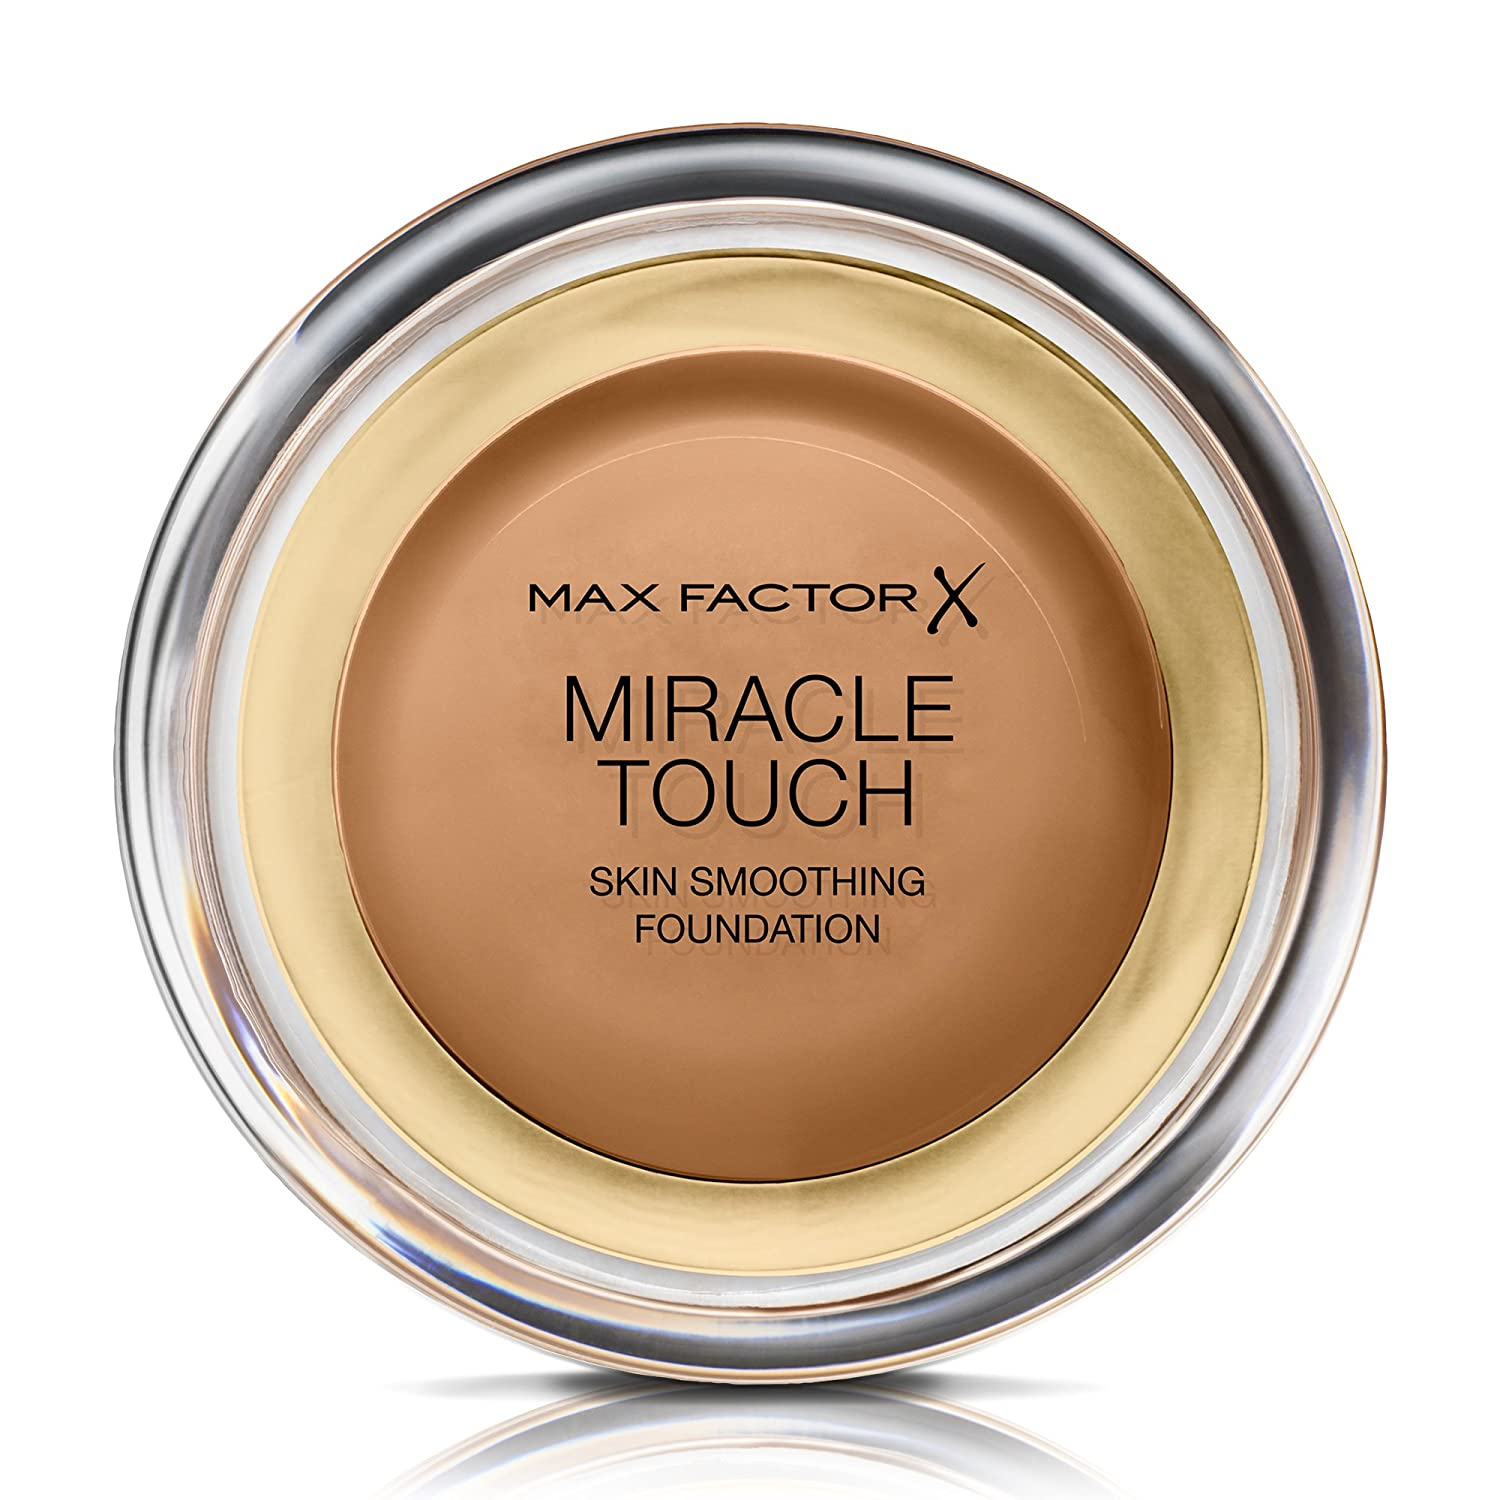 Max Factor Miracle Touch Liquid Illusion Foundation, No. 85 Caramel,1per Pack (1 x 11.5 g)